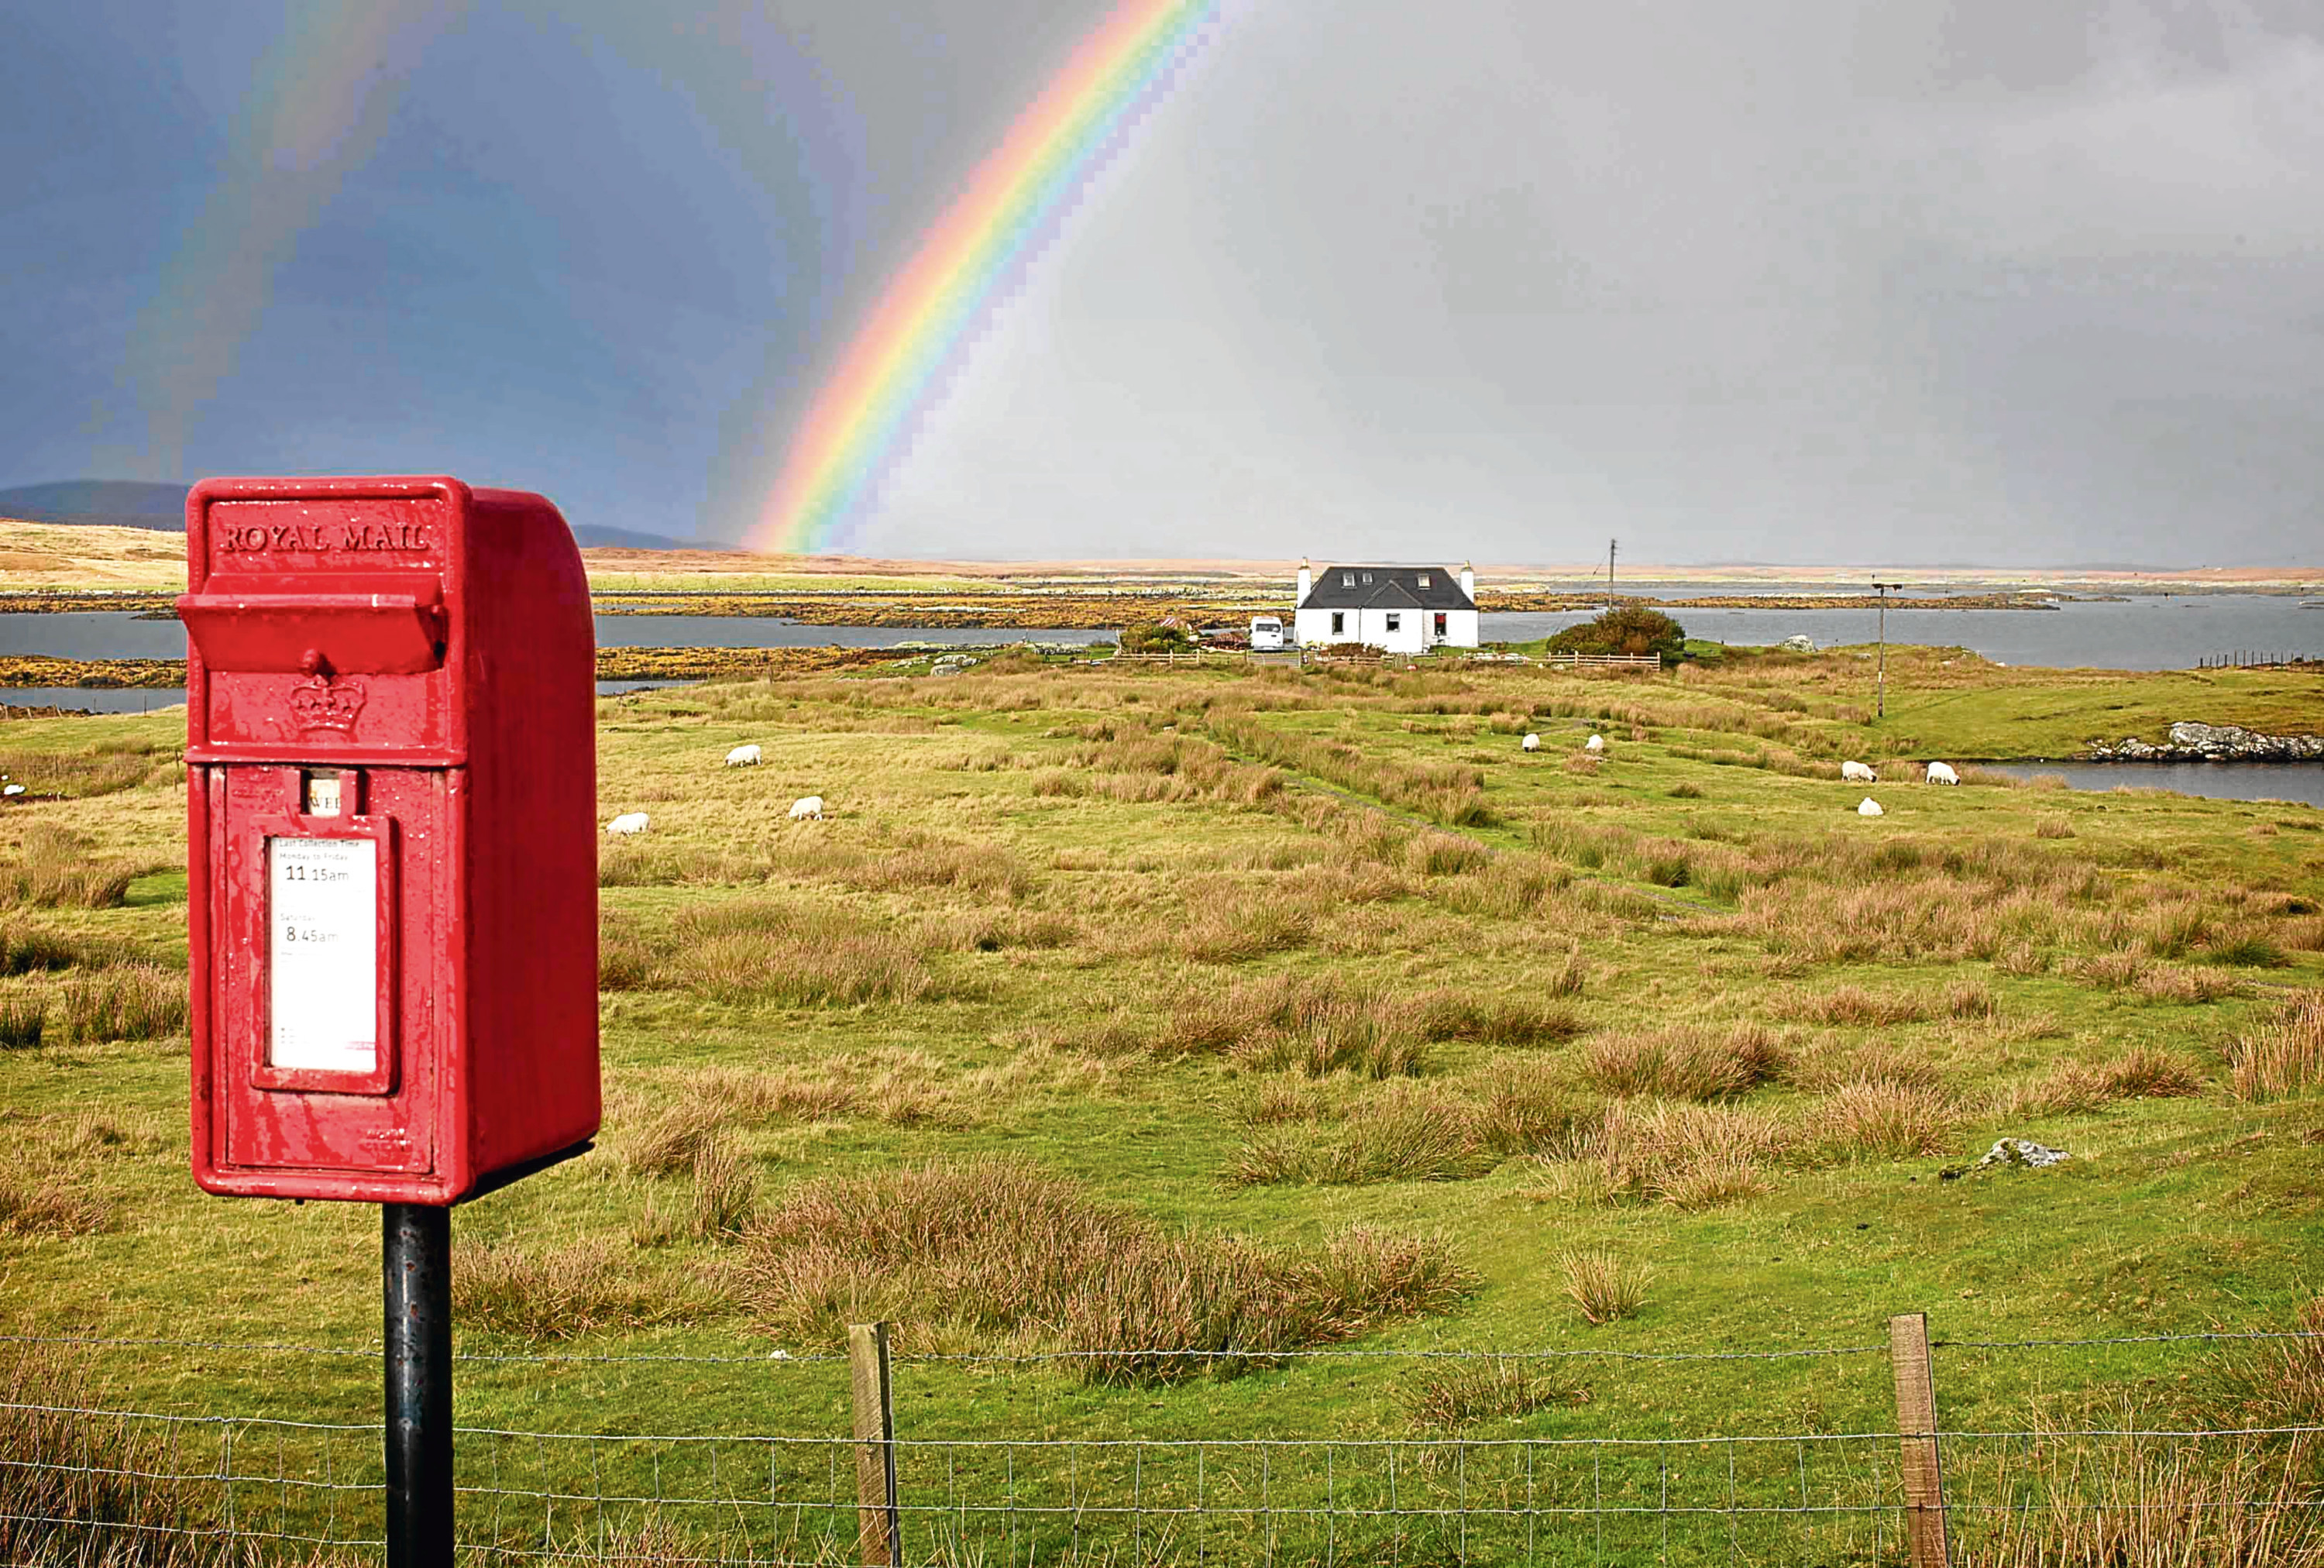 on the Island of North Uist in the Outer Hebrides